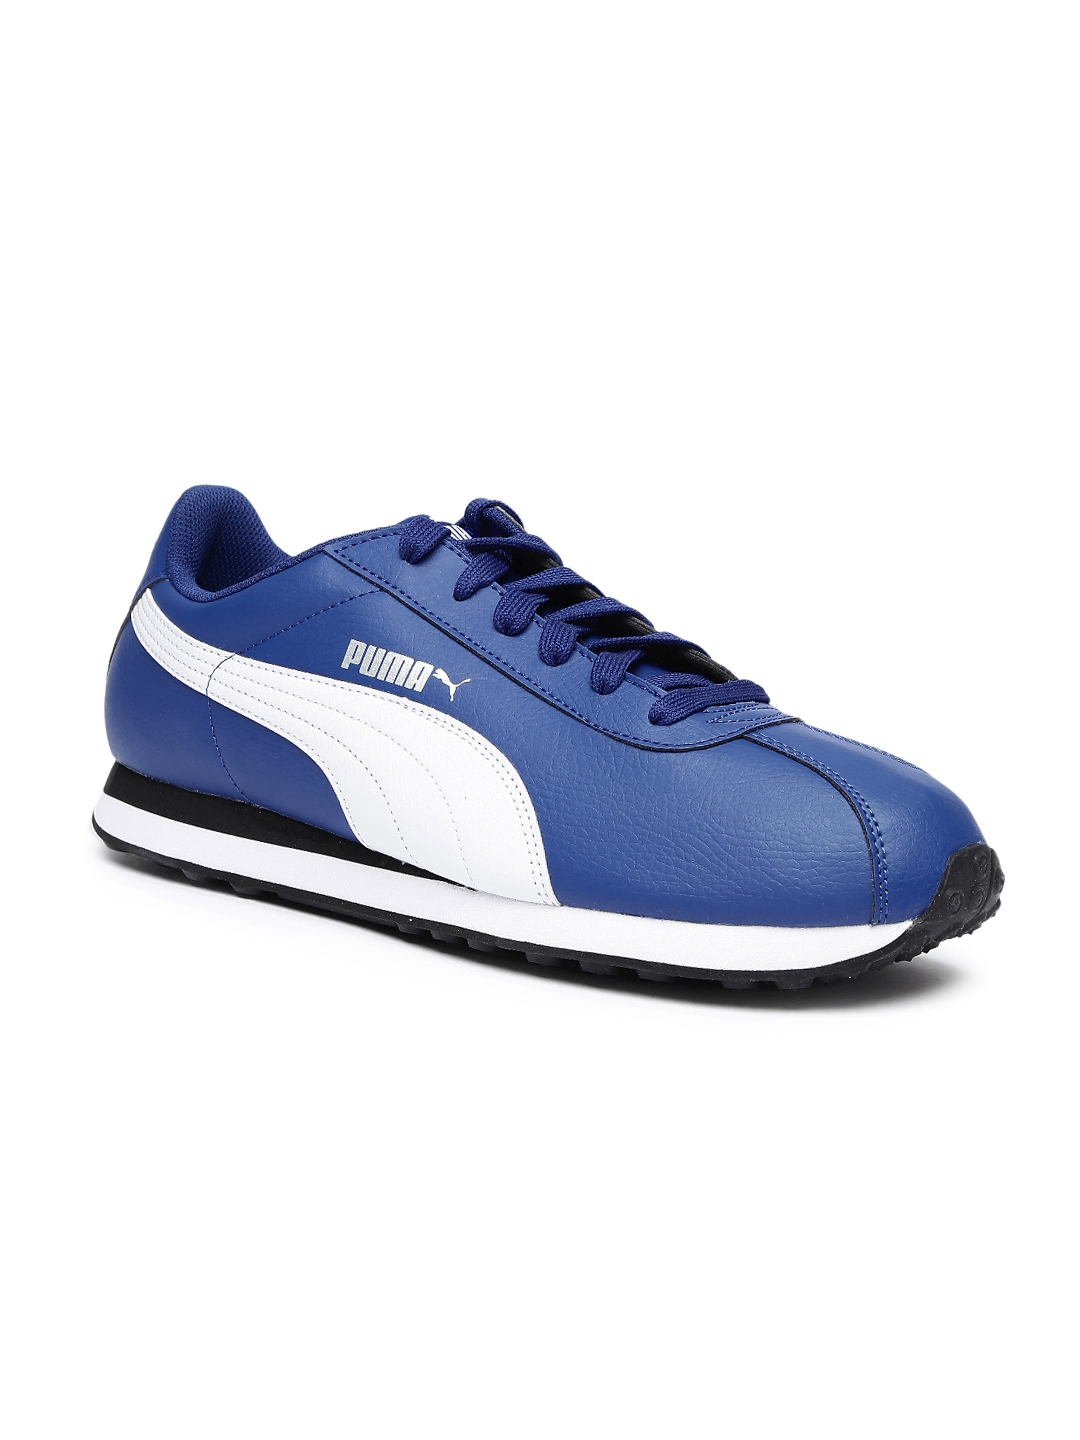 558a257a97b23b Buy Puma Men Blue   White Turin Sneakers - Casual Shoes for Men ...